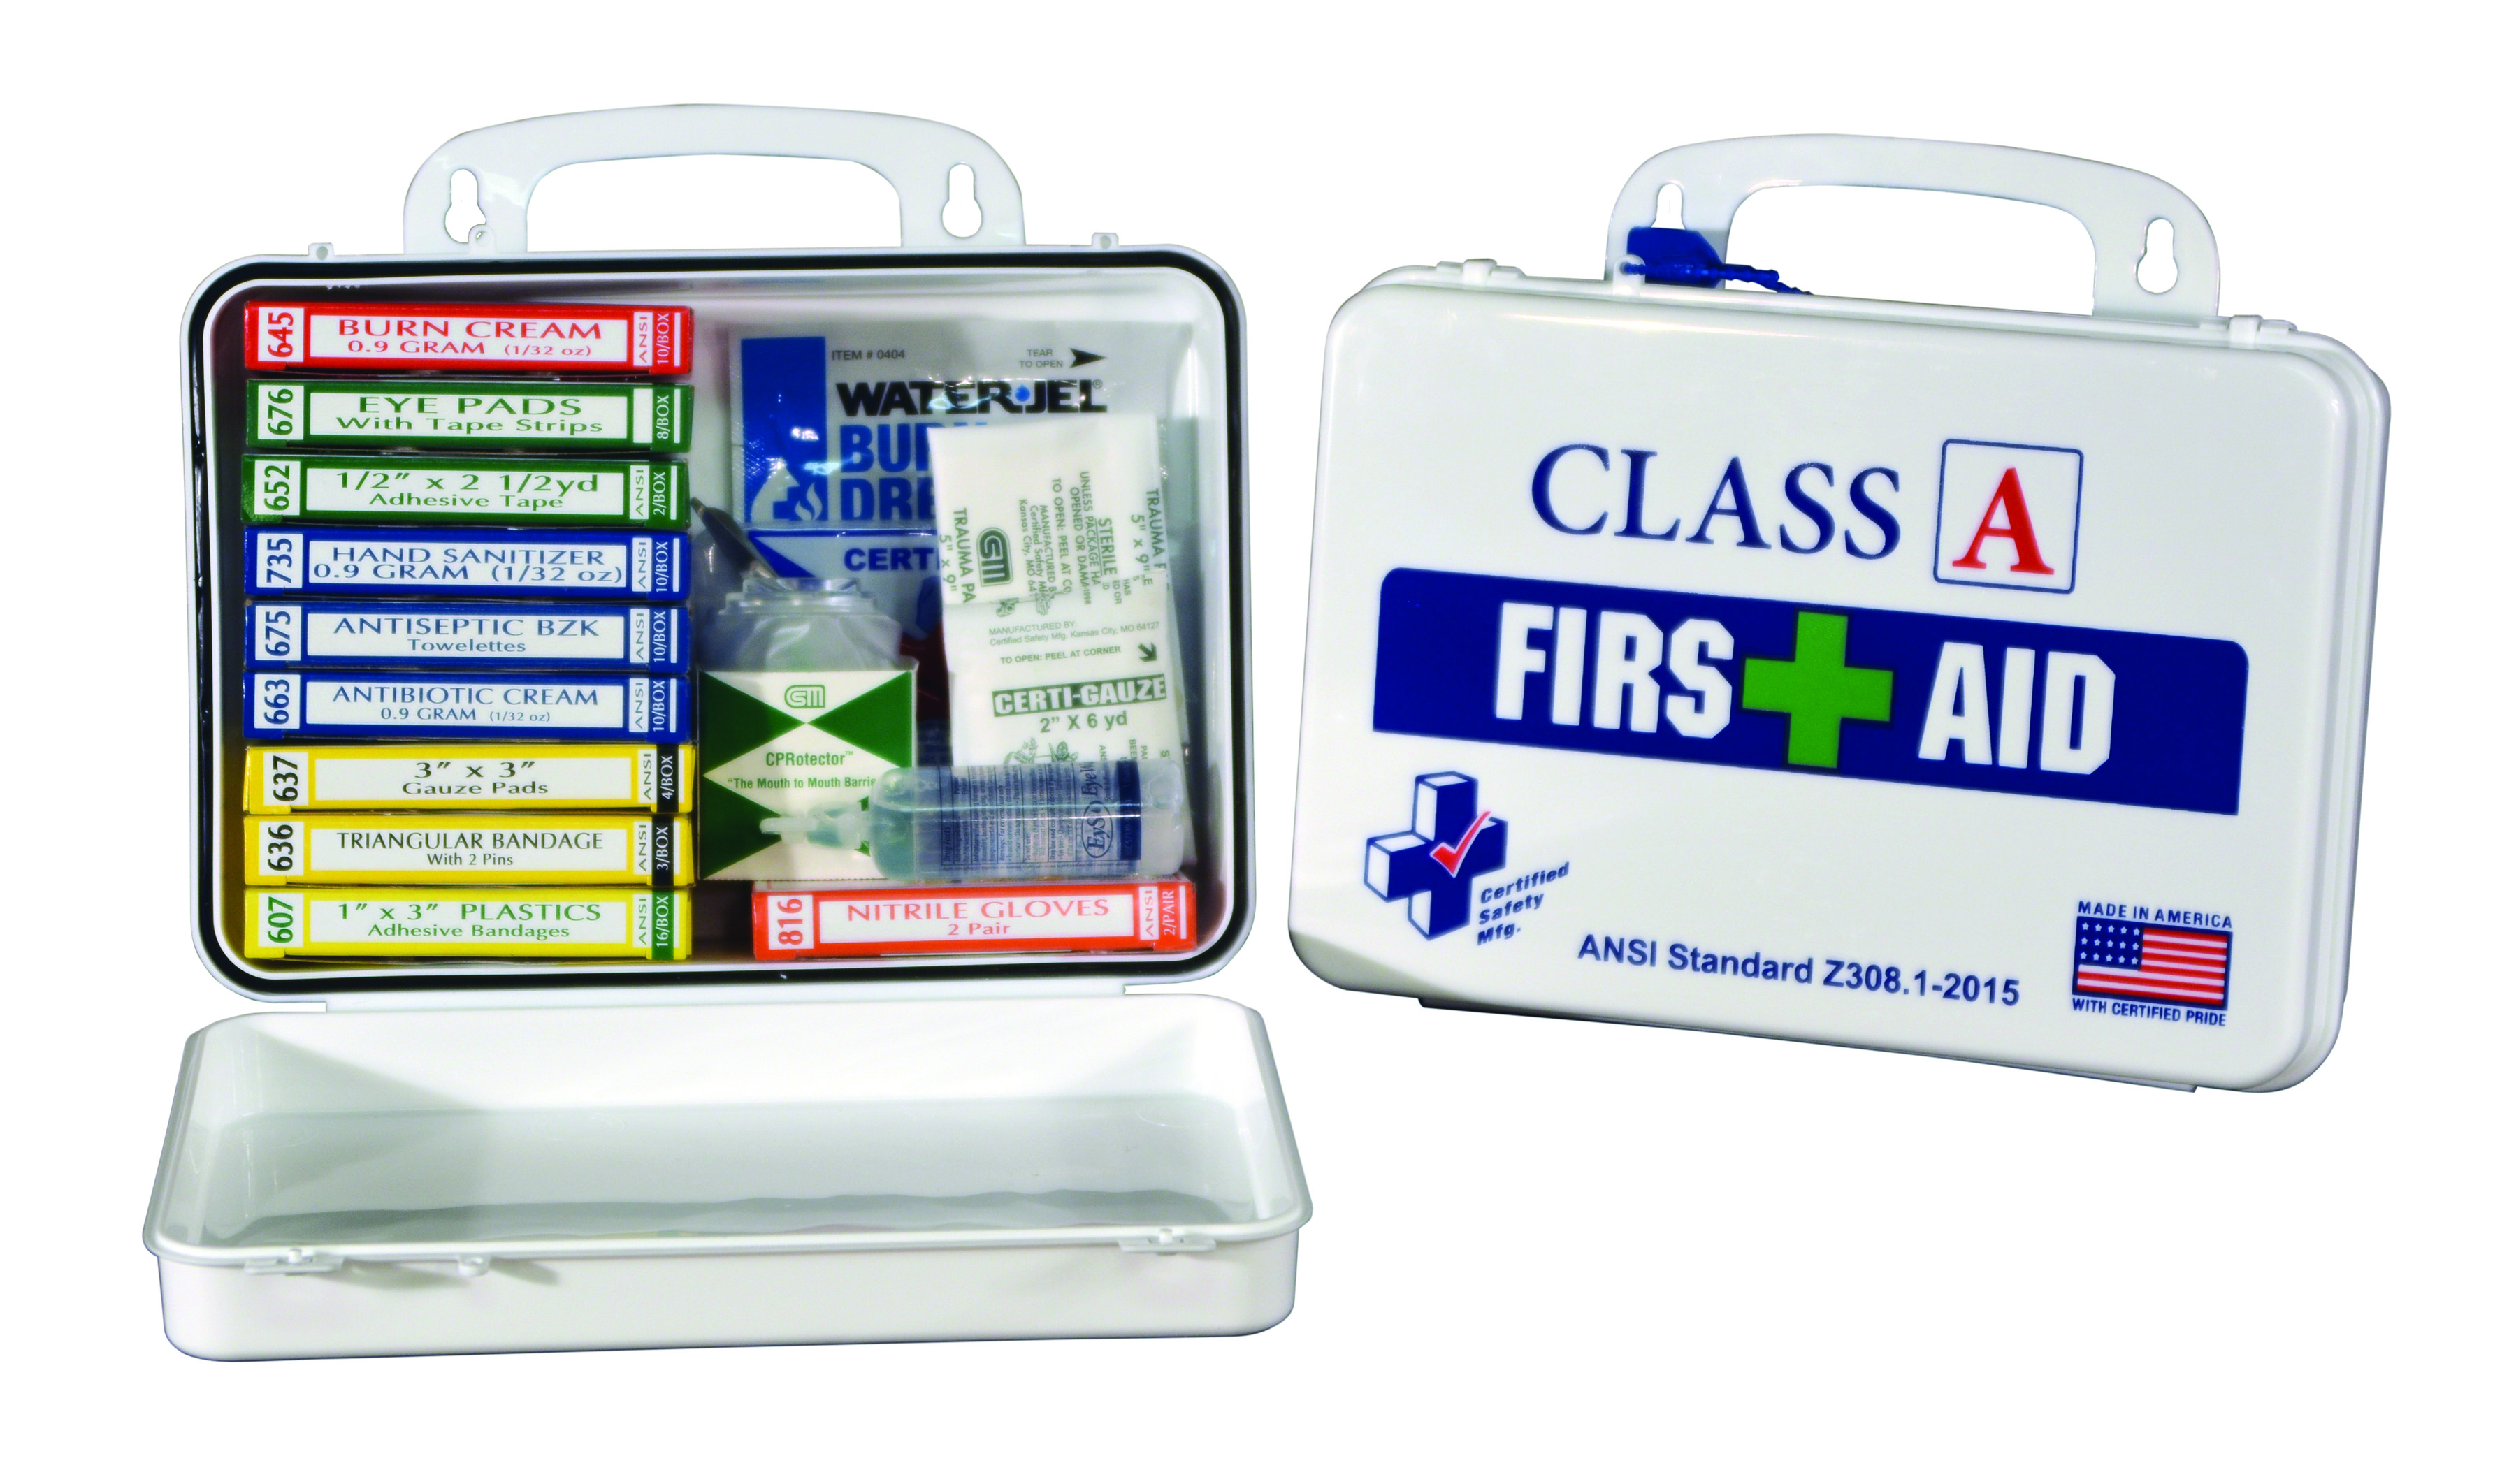 K615-011                       - Class A First Aid Kits - Poly White-Class A First Aid Kit-Designed for common workplace injuries----UOM: 1/EA